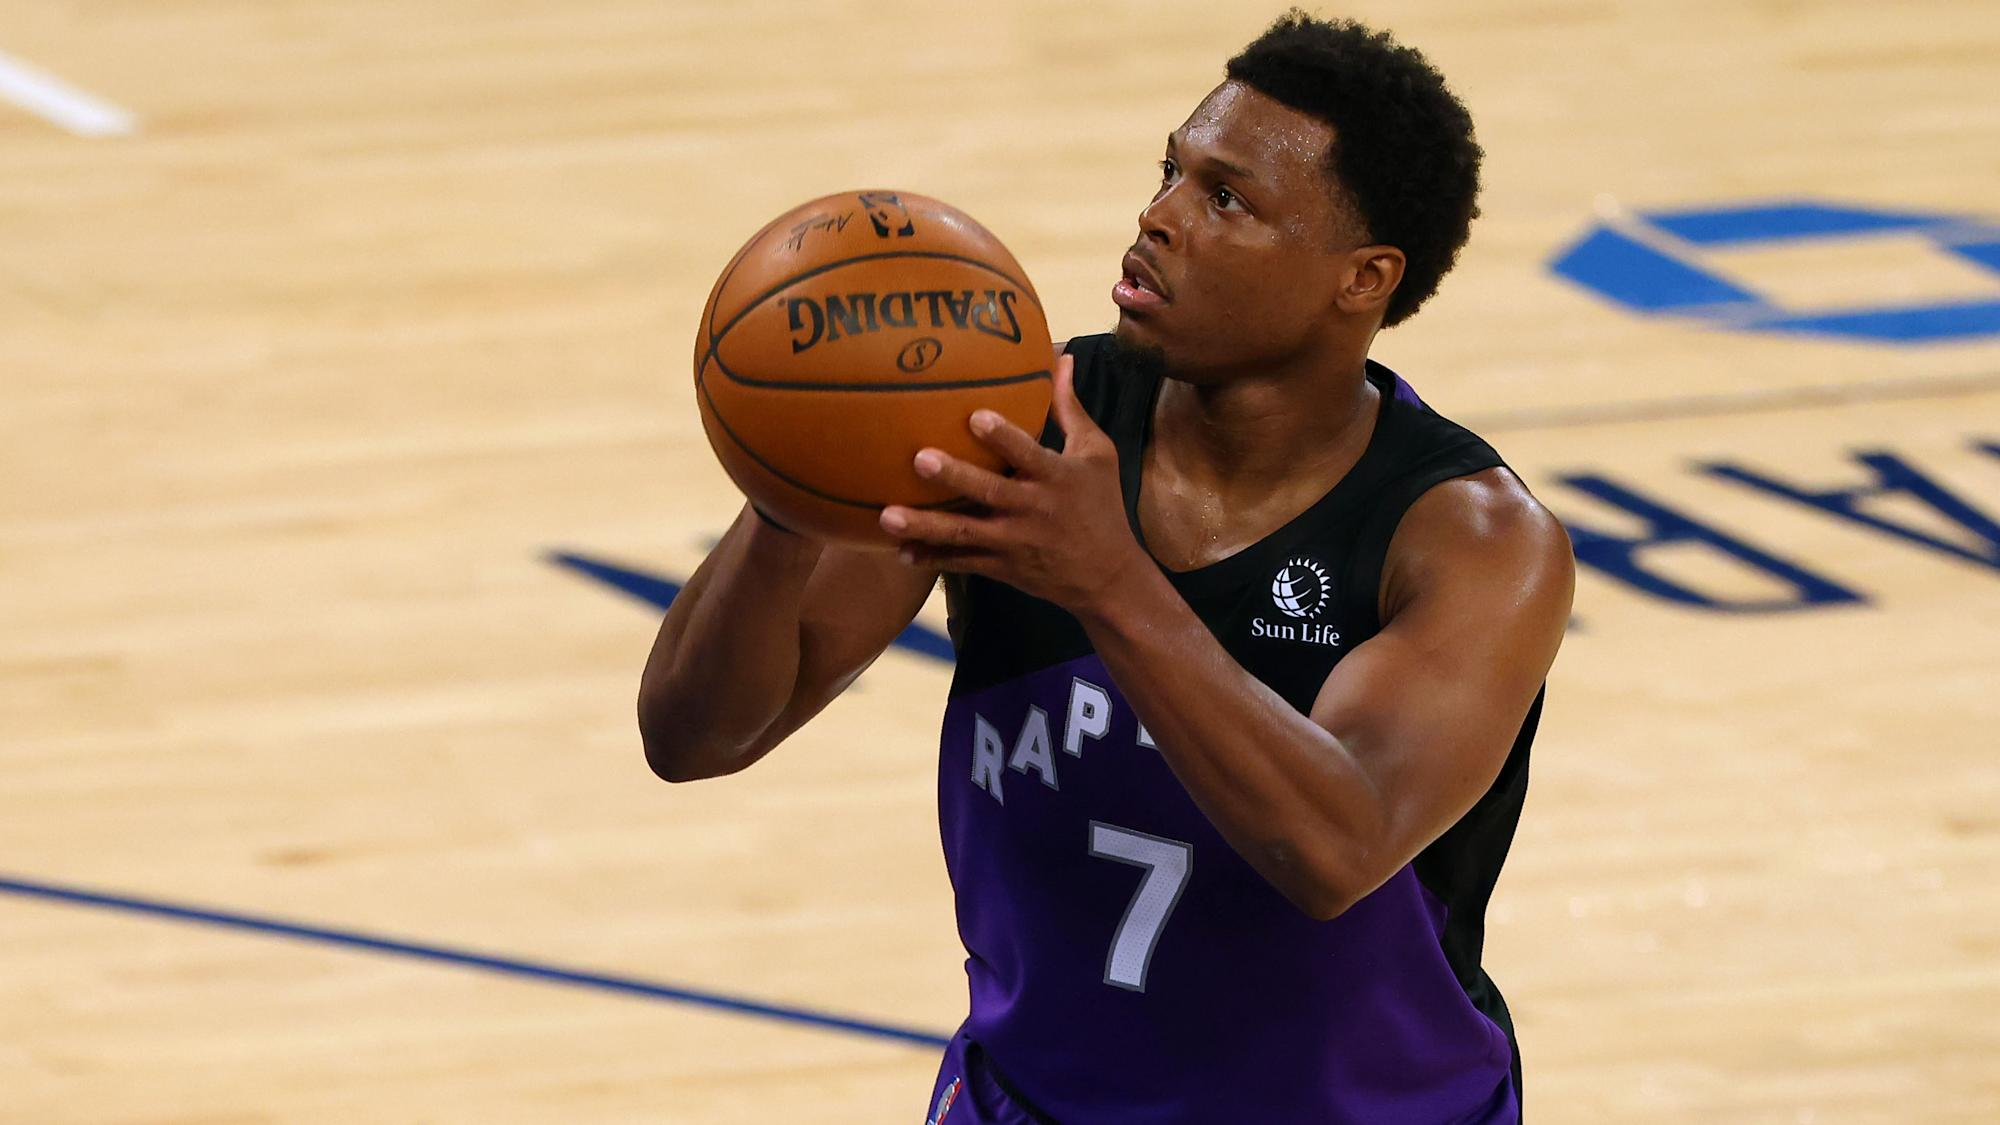 Kyle Lowry will only respond to 'Dr. Lowry' after receiving honorary doctorate